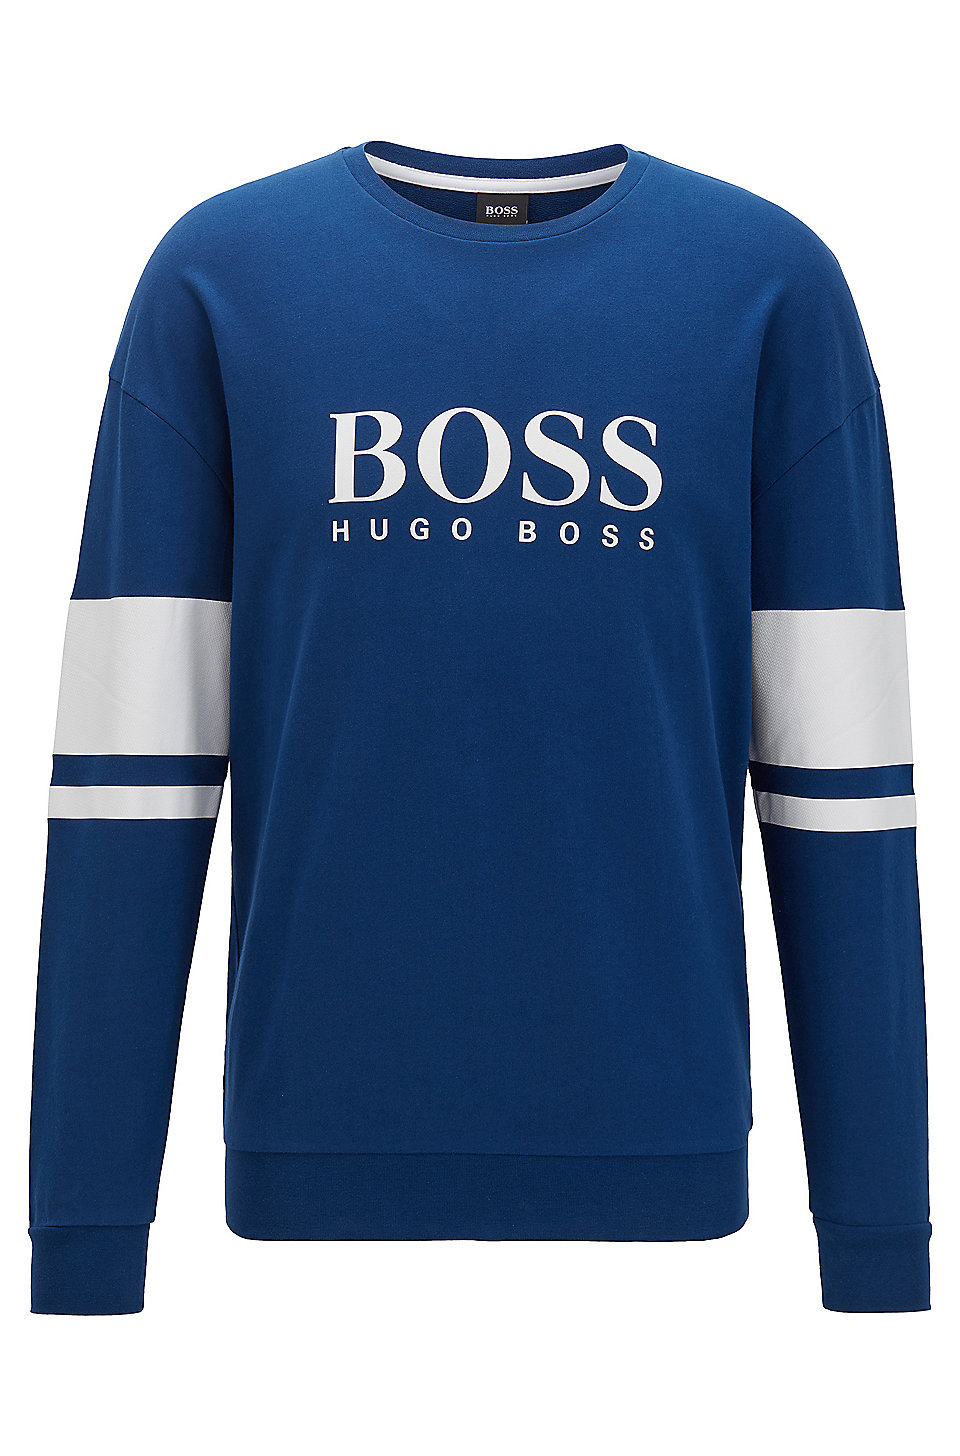 BOSS Mens Authentic Sweatshirt Logo Loungewear Sweatshirt in French Terry with Contrast Stripes